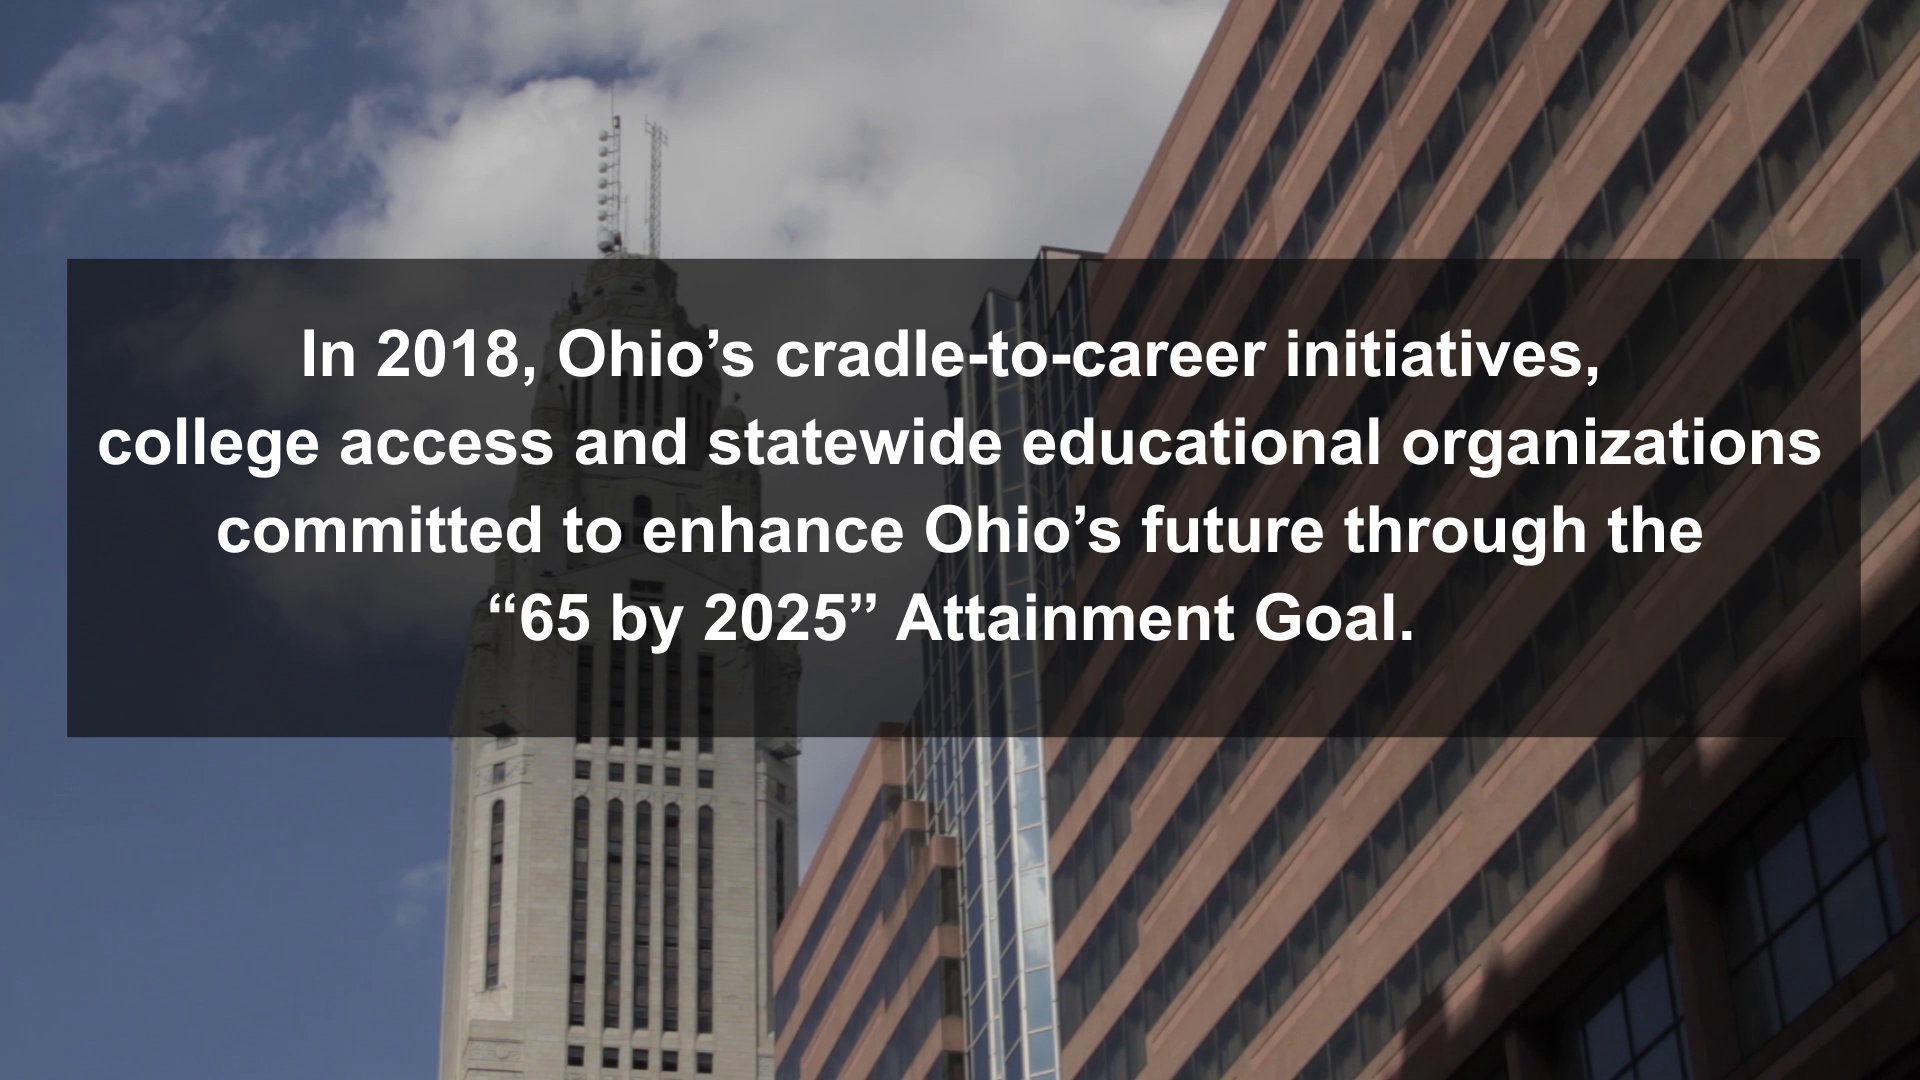 65 by 2025 Attainment Goal